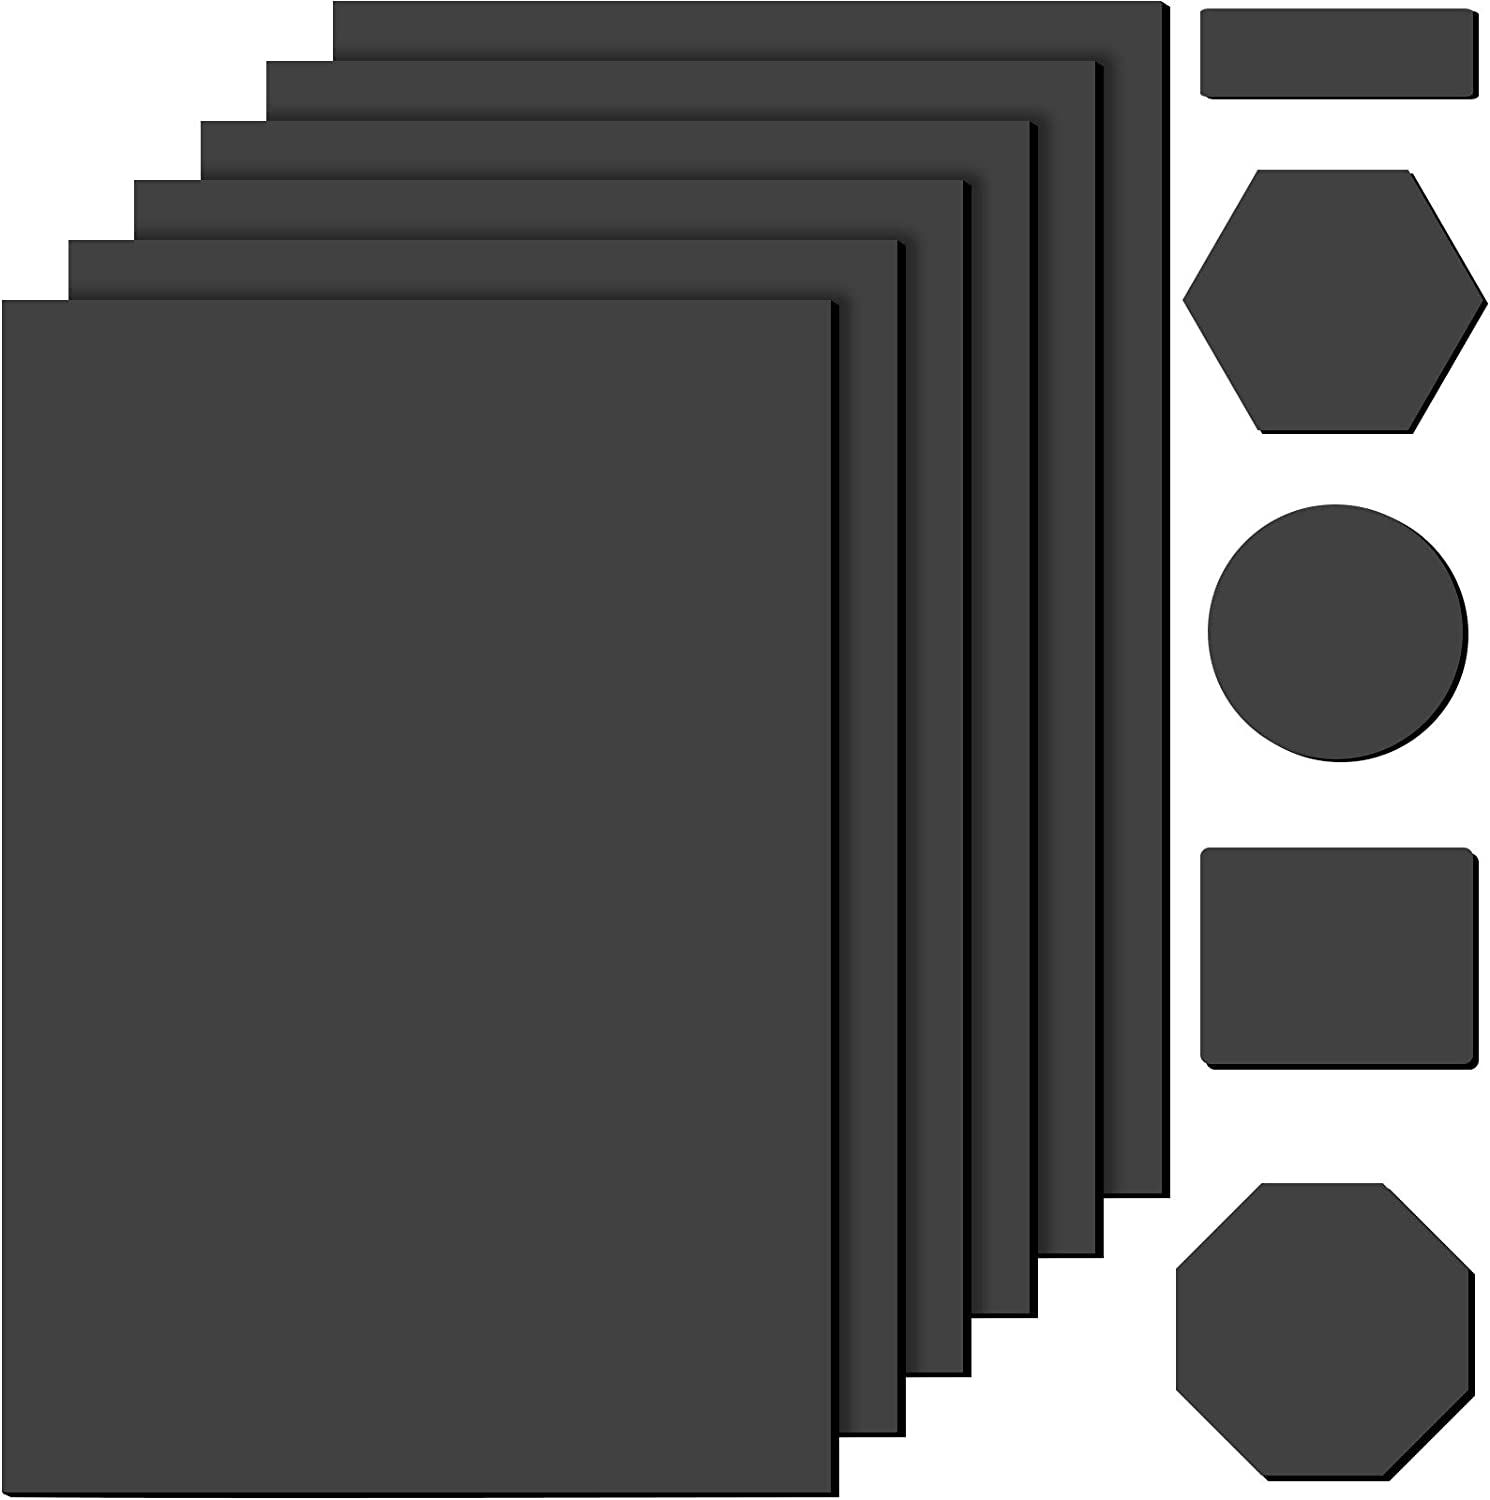 6 Pieces Self-Stick Rubber Non Slip Pads Black Furniture Grippers Furniture and Floor Protectors for Furniture Protection Stoppers, 6 x 4 Inches